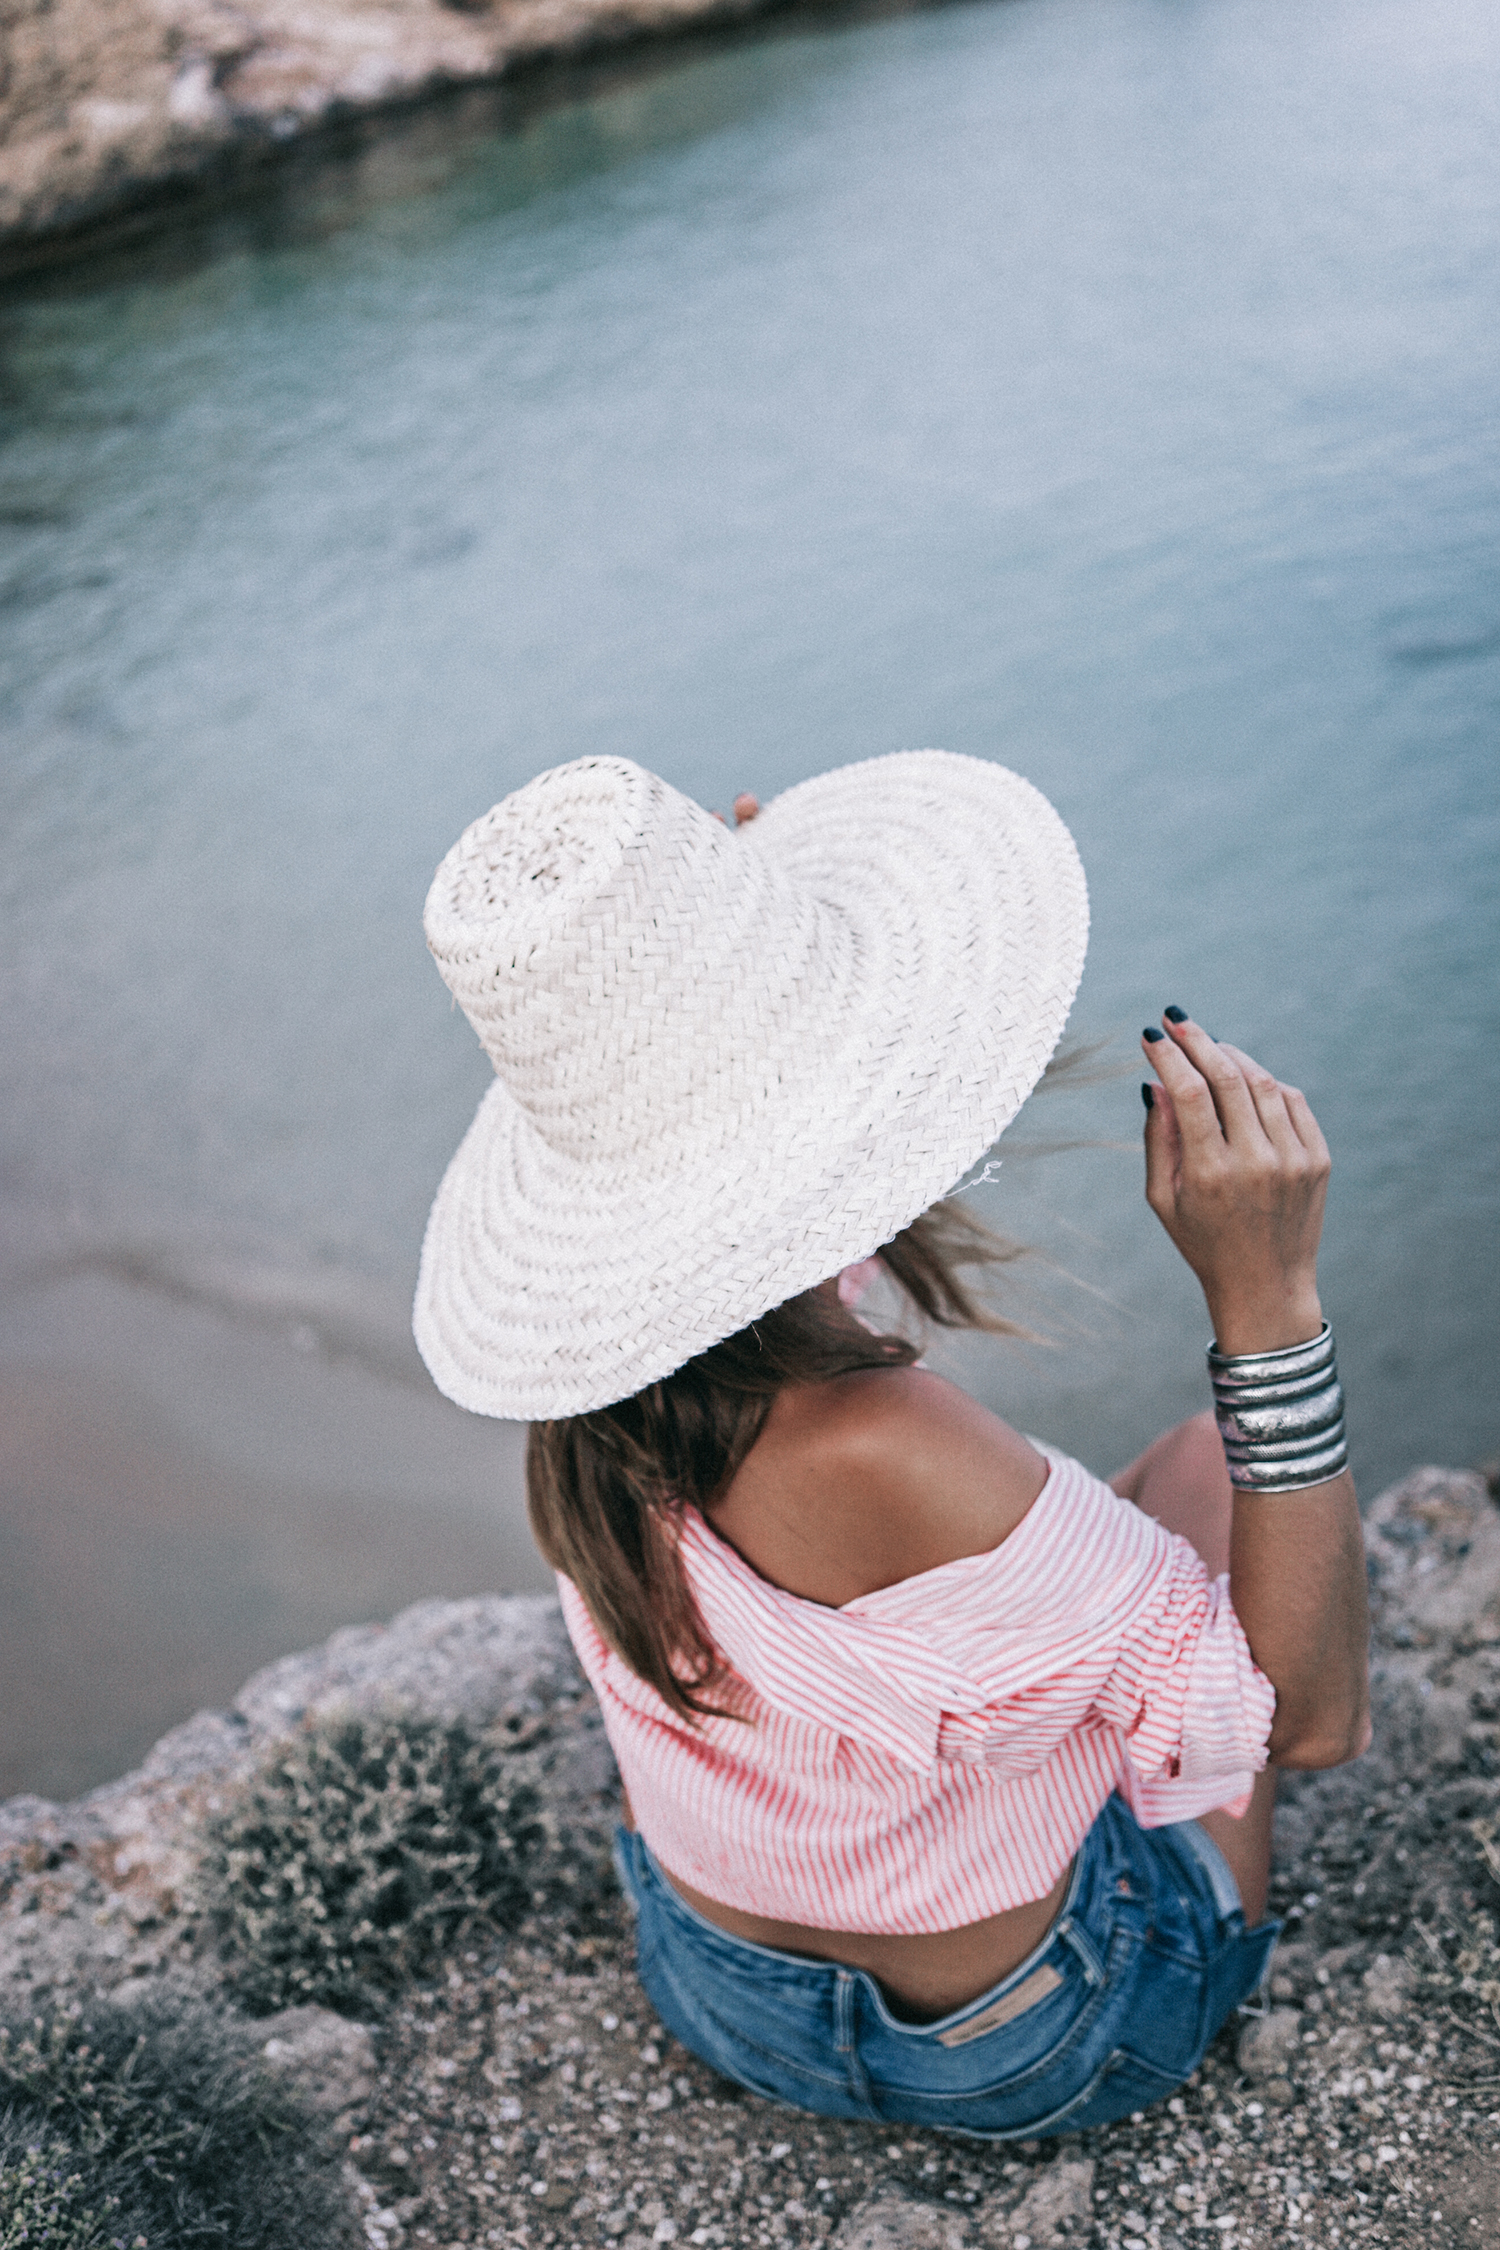 Mykonos-Collage_on_The_Road-Striped_Shirt-GRLFRND_Shorts-Straw_Hat-16